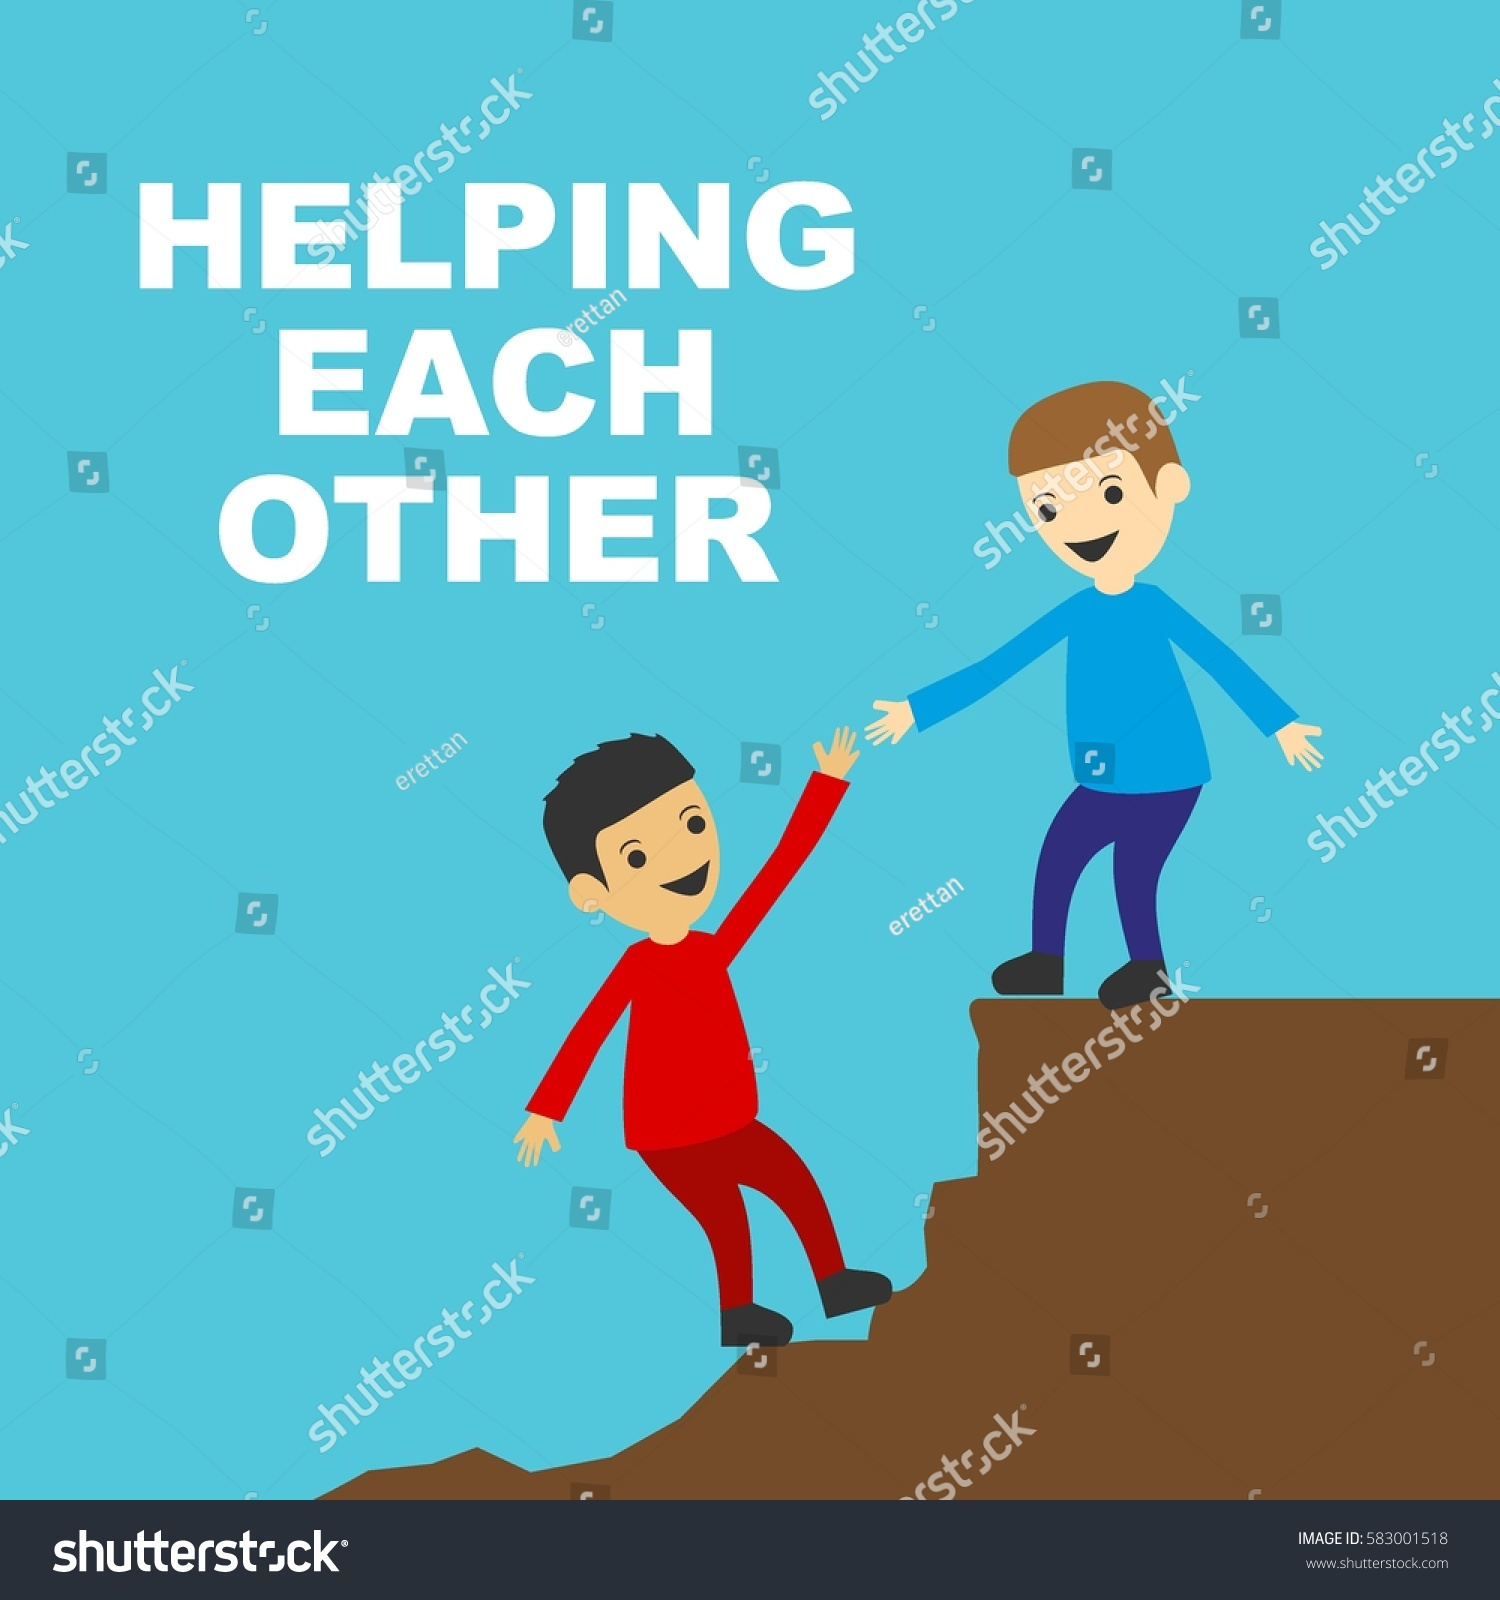 Helping Each Other: Help Each Other Illustration Concept Stock Vector